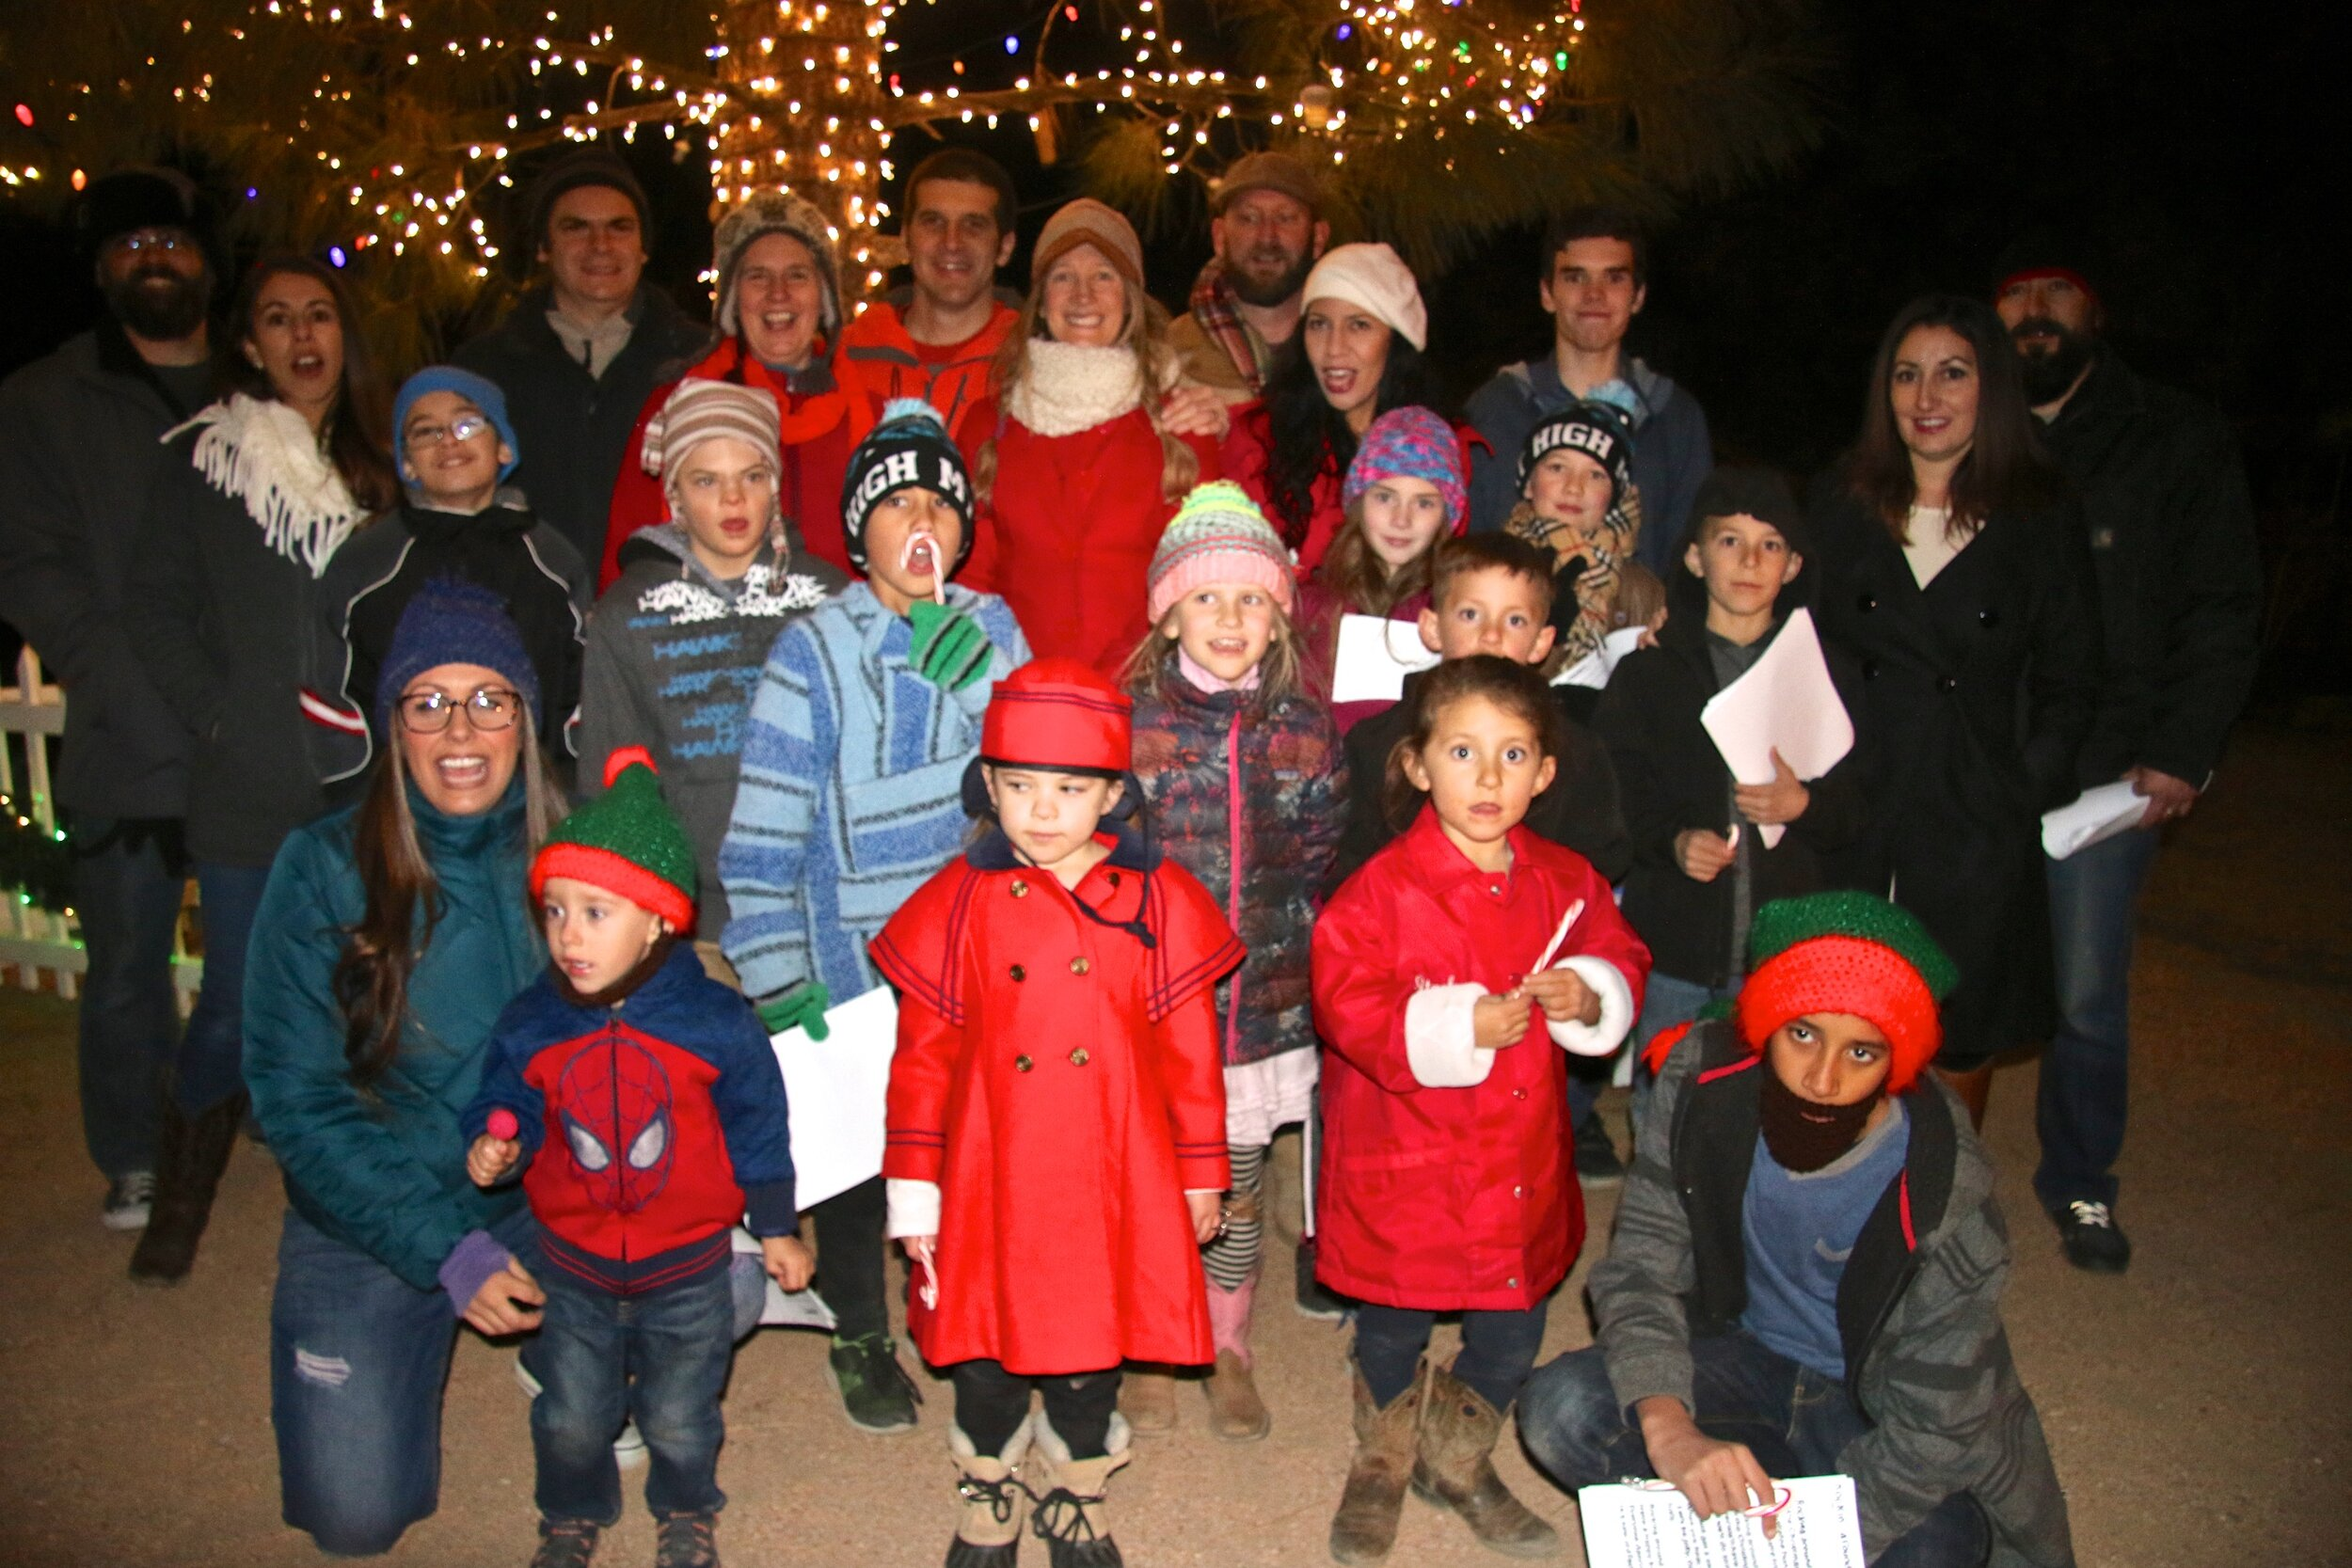 Christmas Caroling in Wrightwood